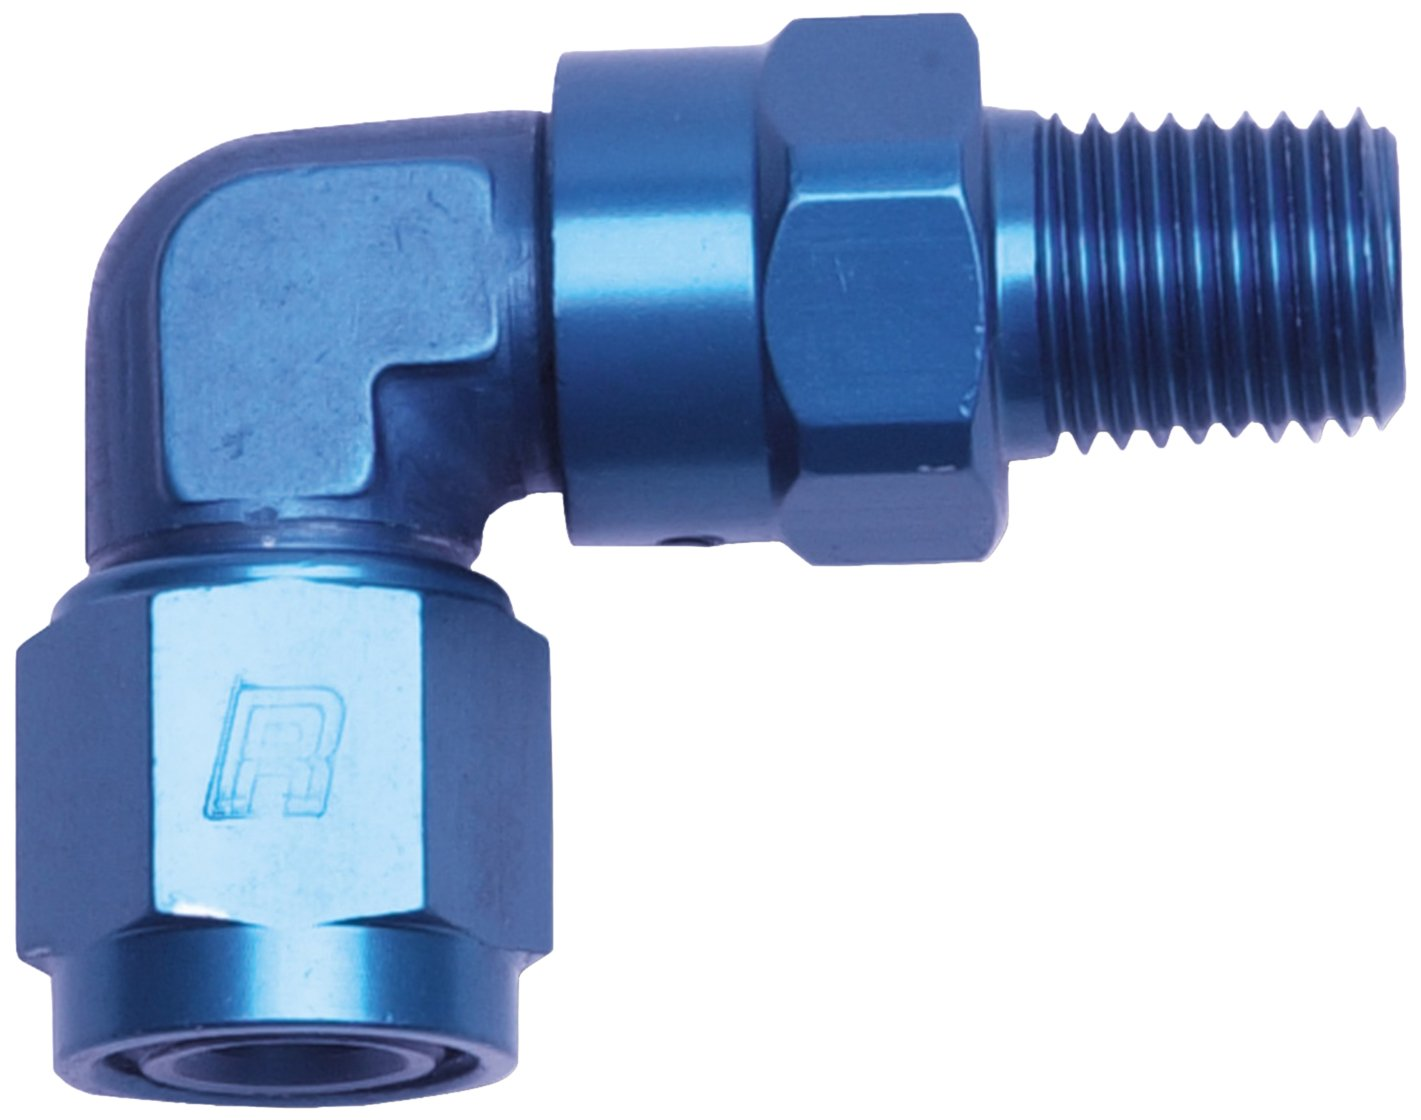 Russell RUS-614026 ADAPTER FITTING